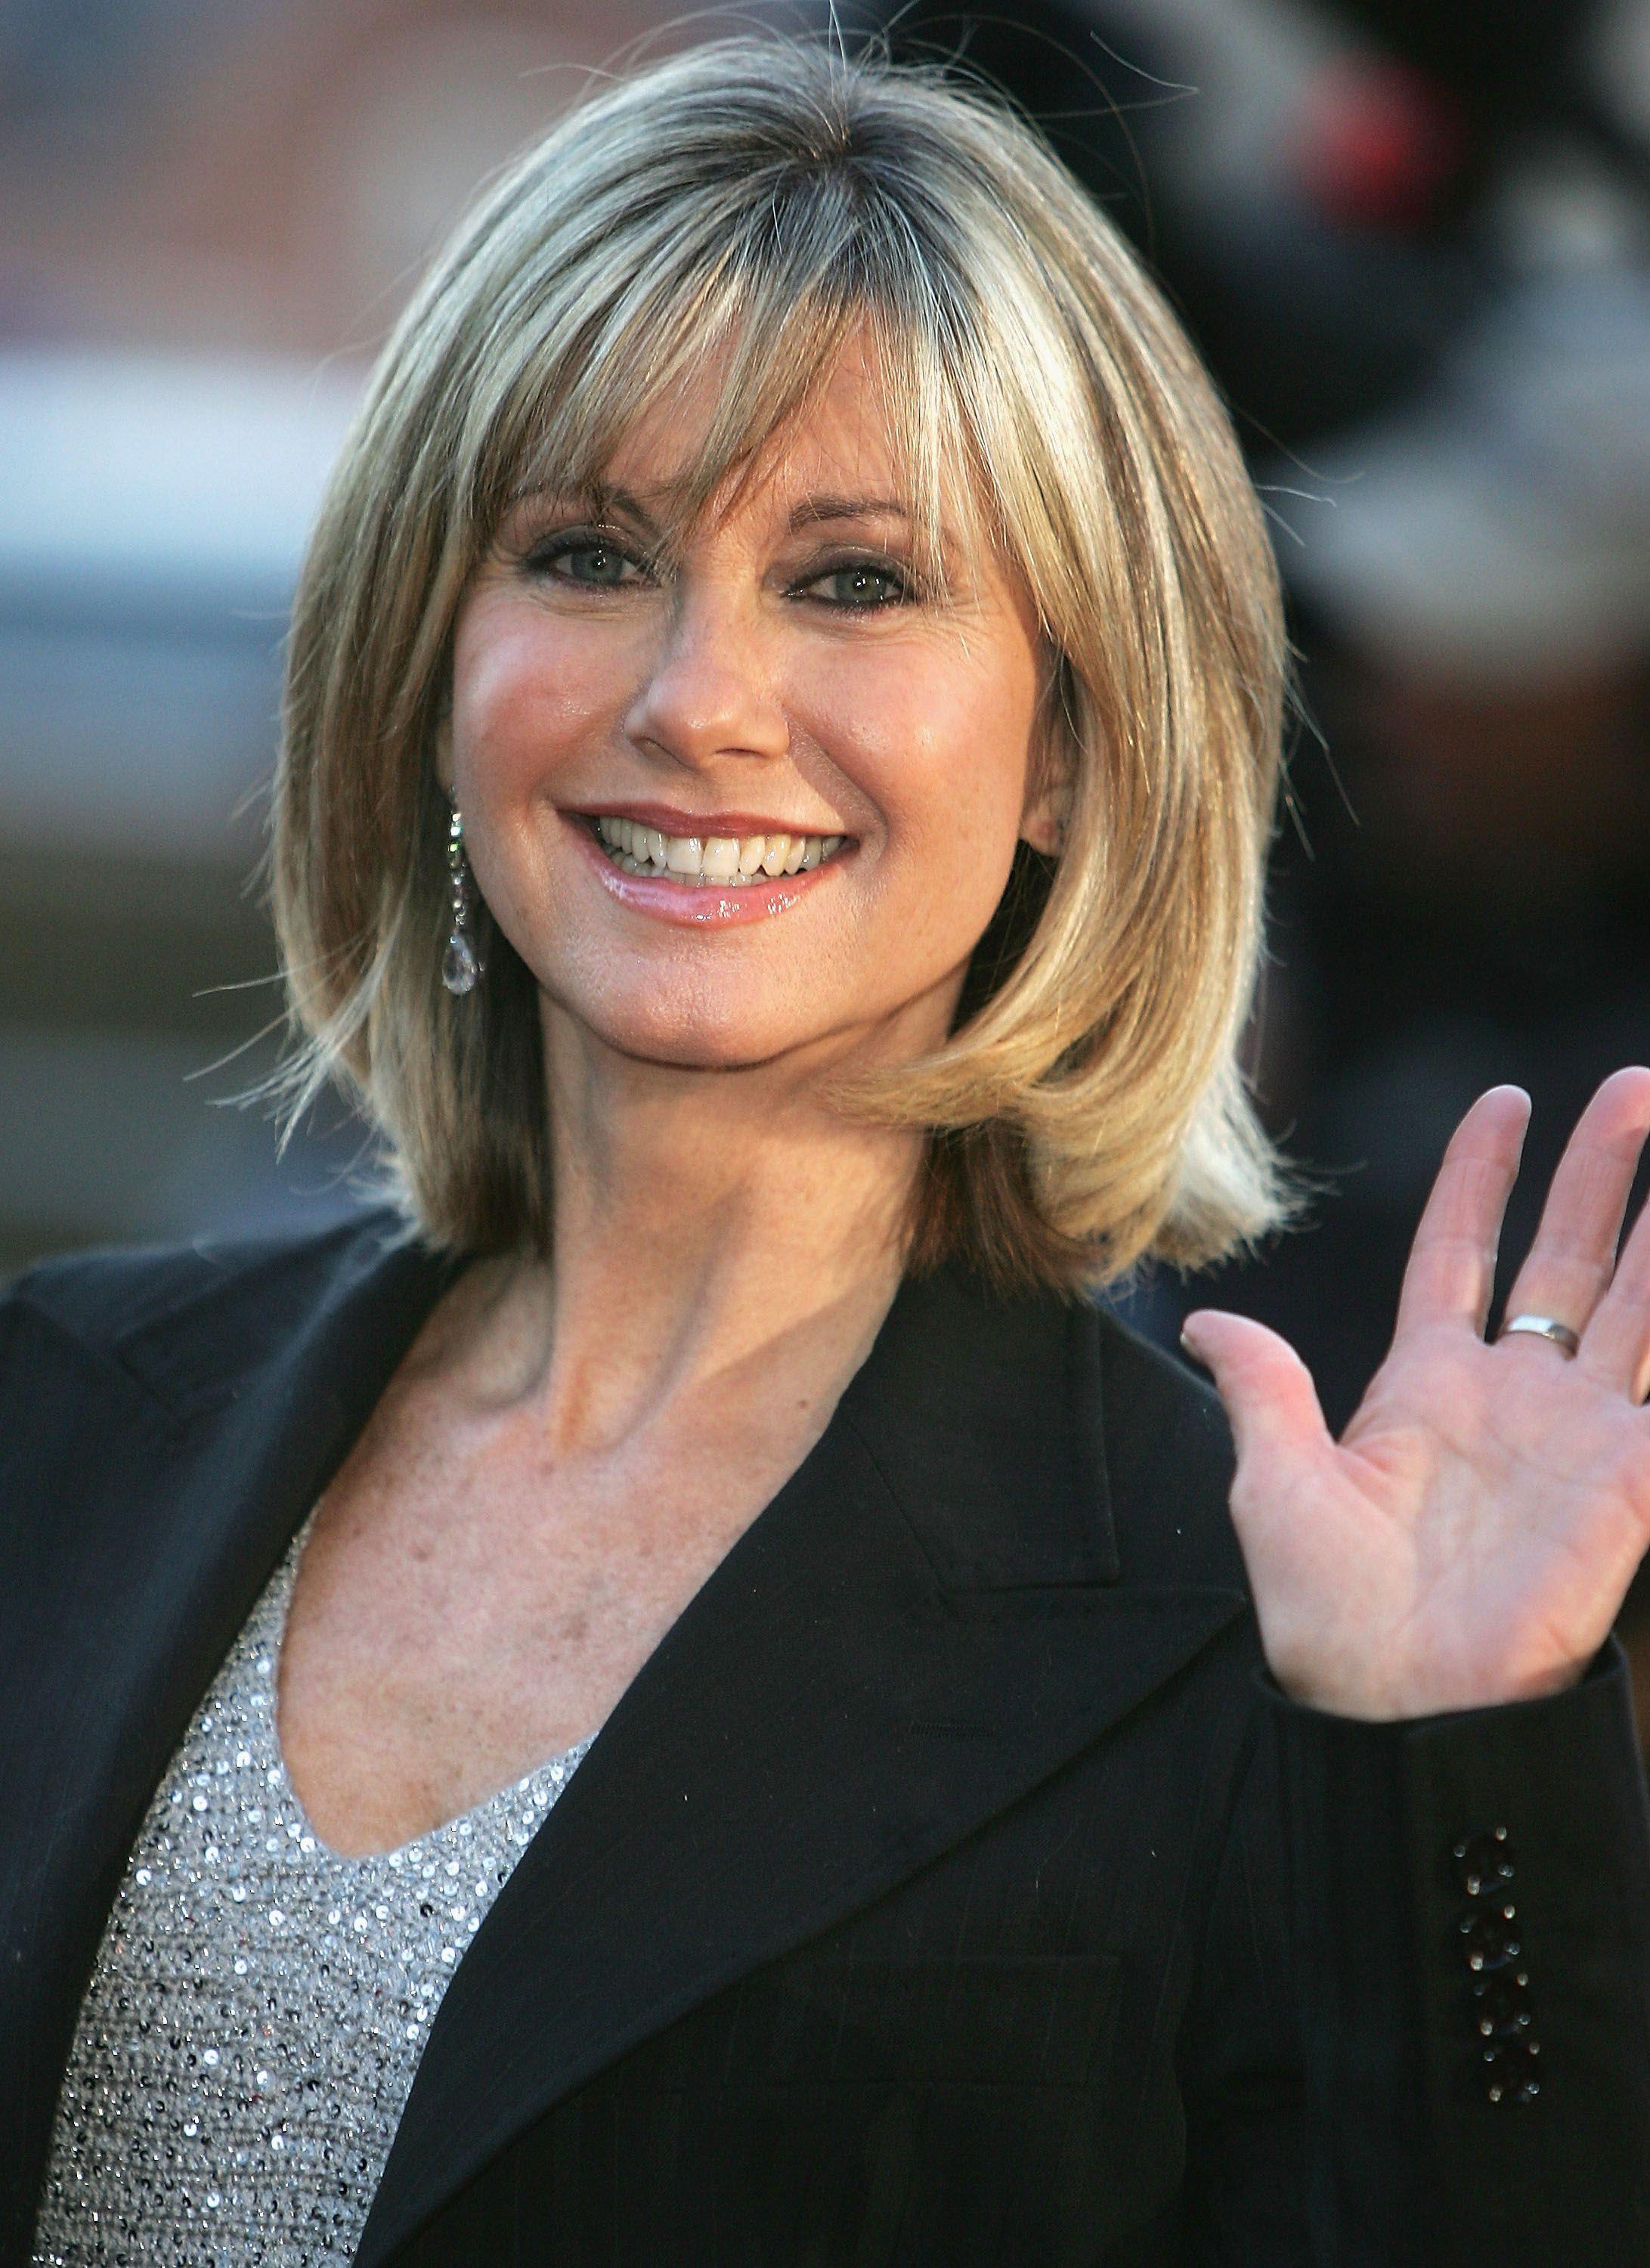 Olivia newton john singer actress songwriter entrepreneur